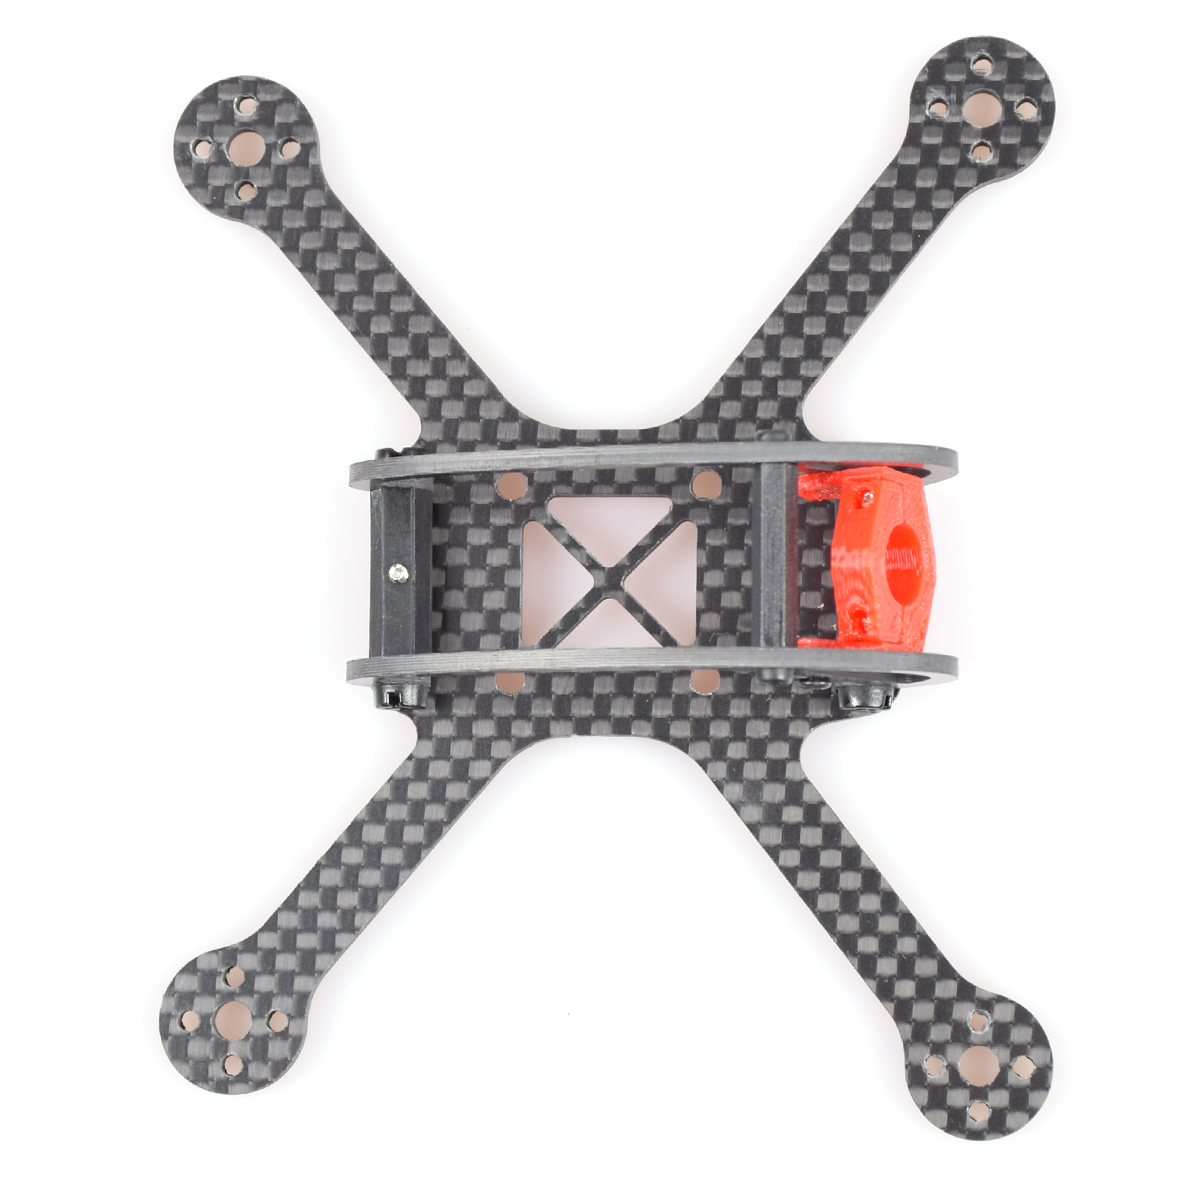 120mm Carbon Fiber Frame Kit X Shape 4-Axle Frame Leader-120 for DIY Micro Racing FPV Drone Quadcopter